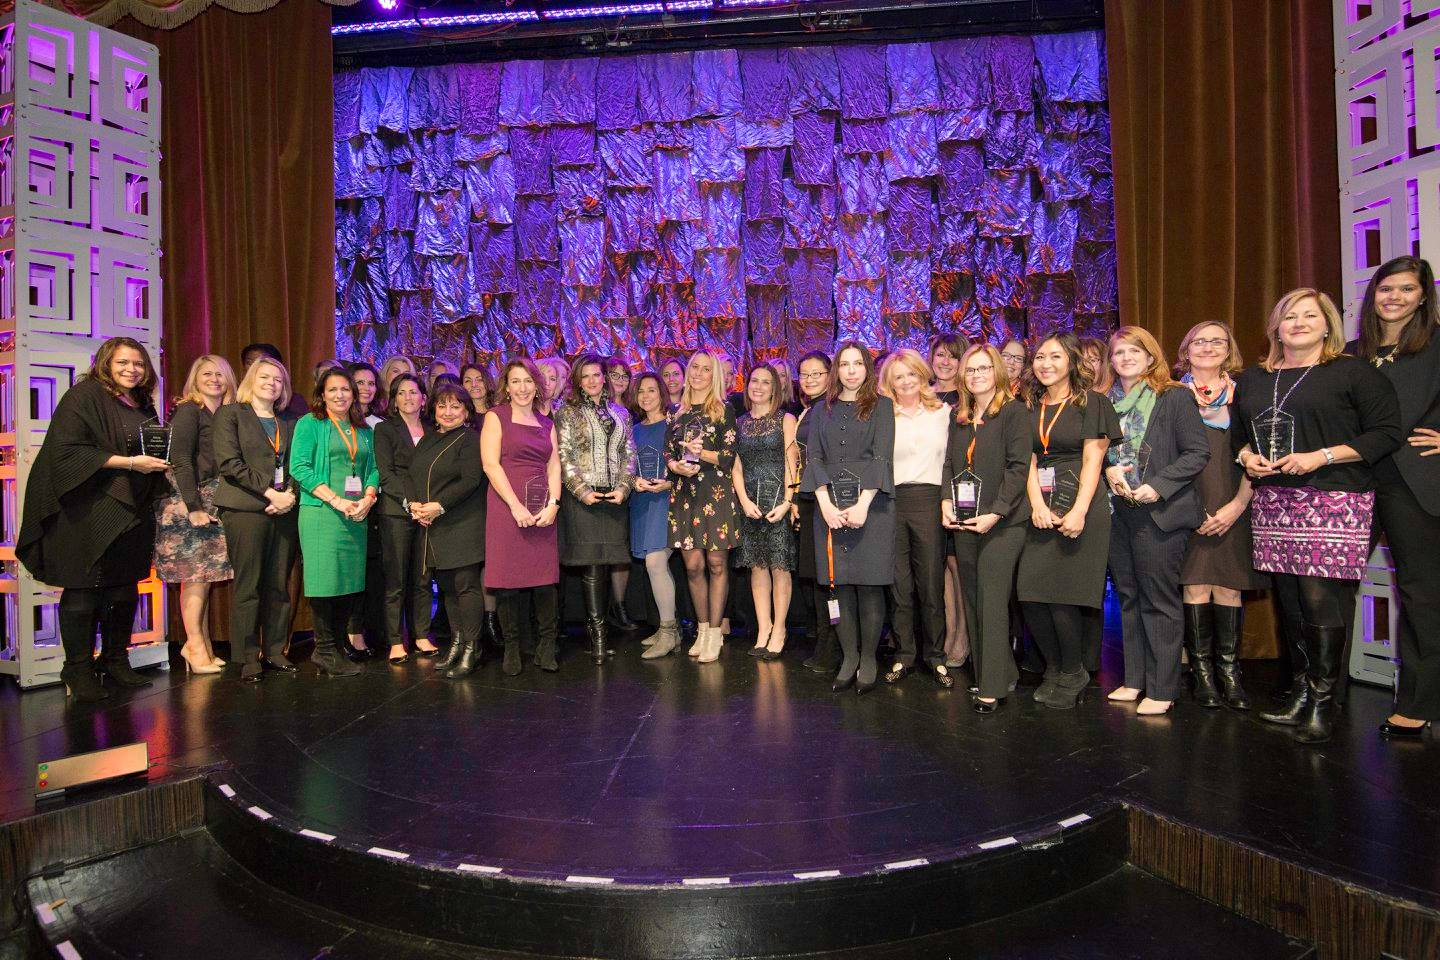 Cablefax Most Powerful Women in Cable